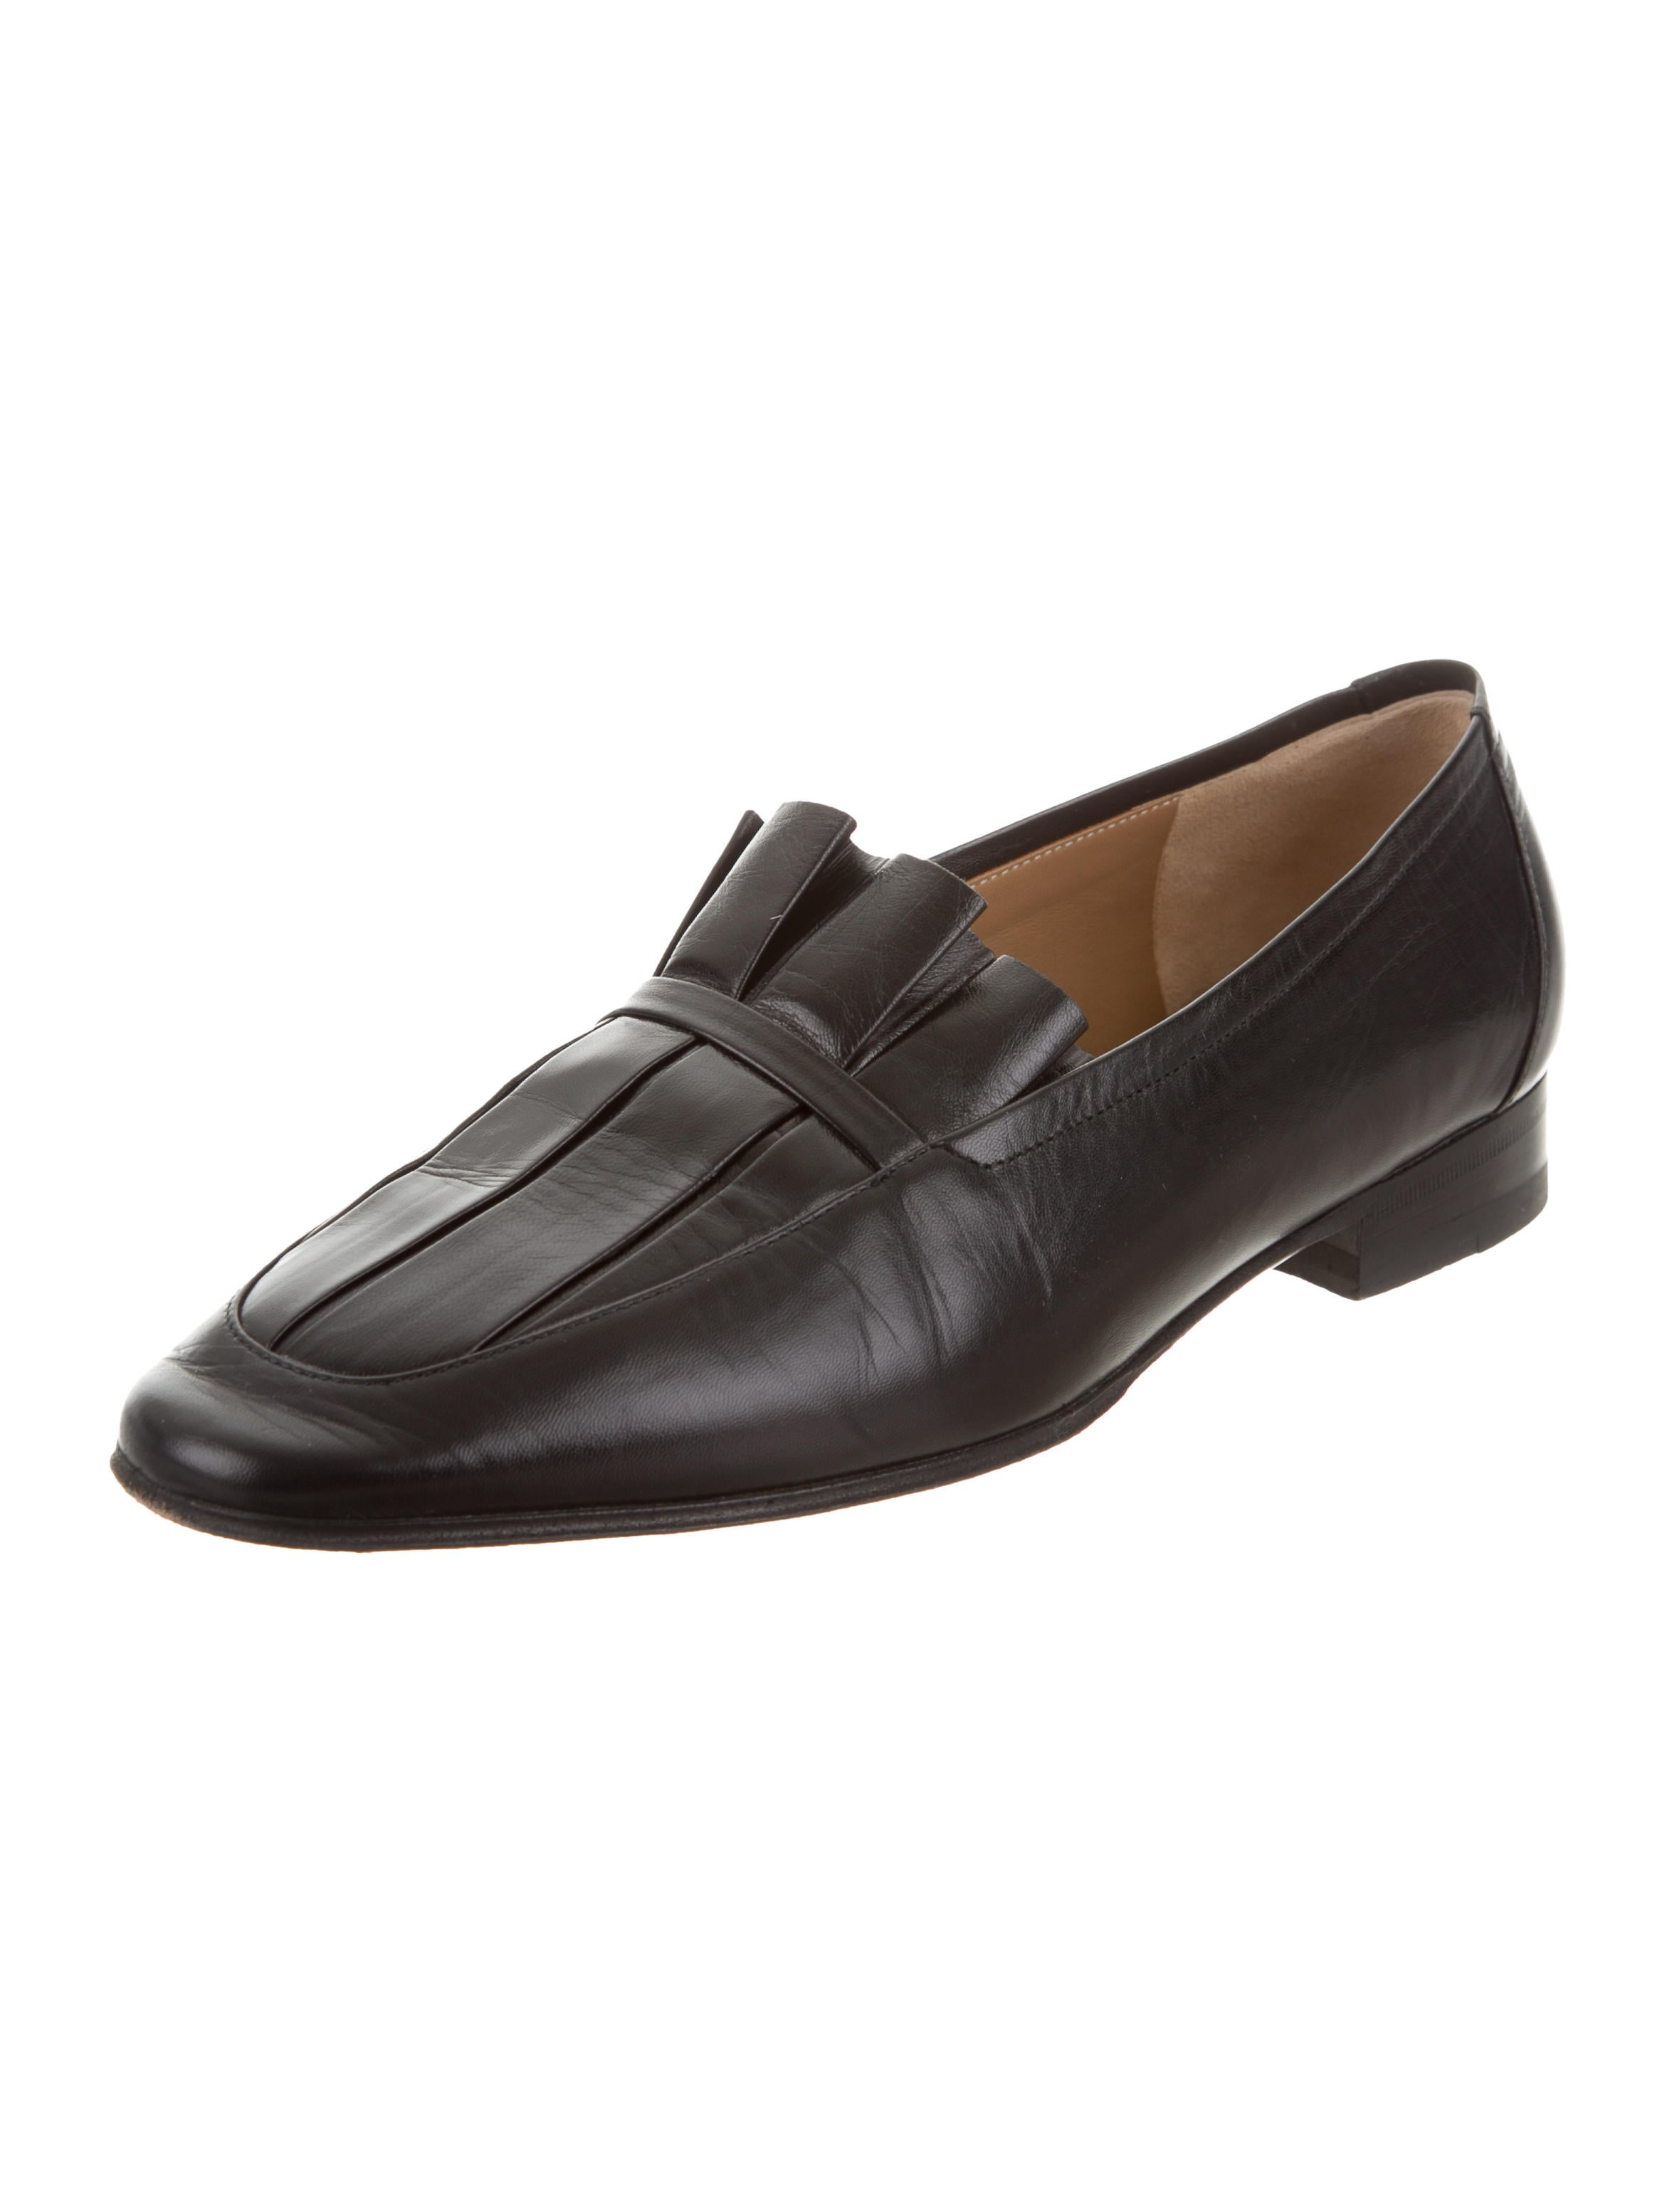 The Row 2017 Adam Pleated Loafers sale sale online outlet wholesale price looking for sale online cOJ8UIA